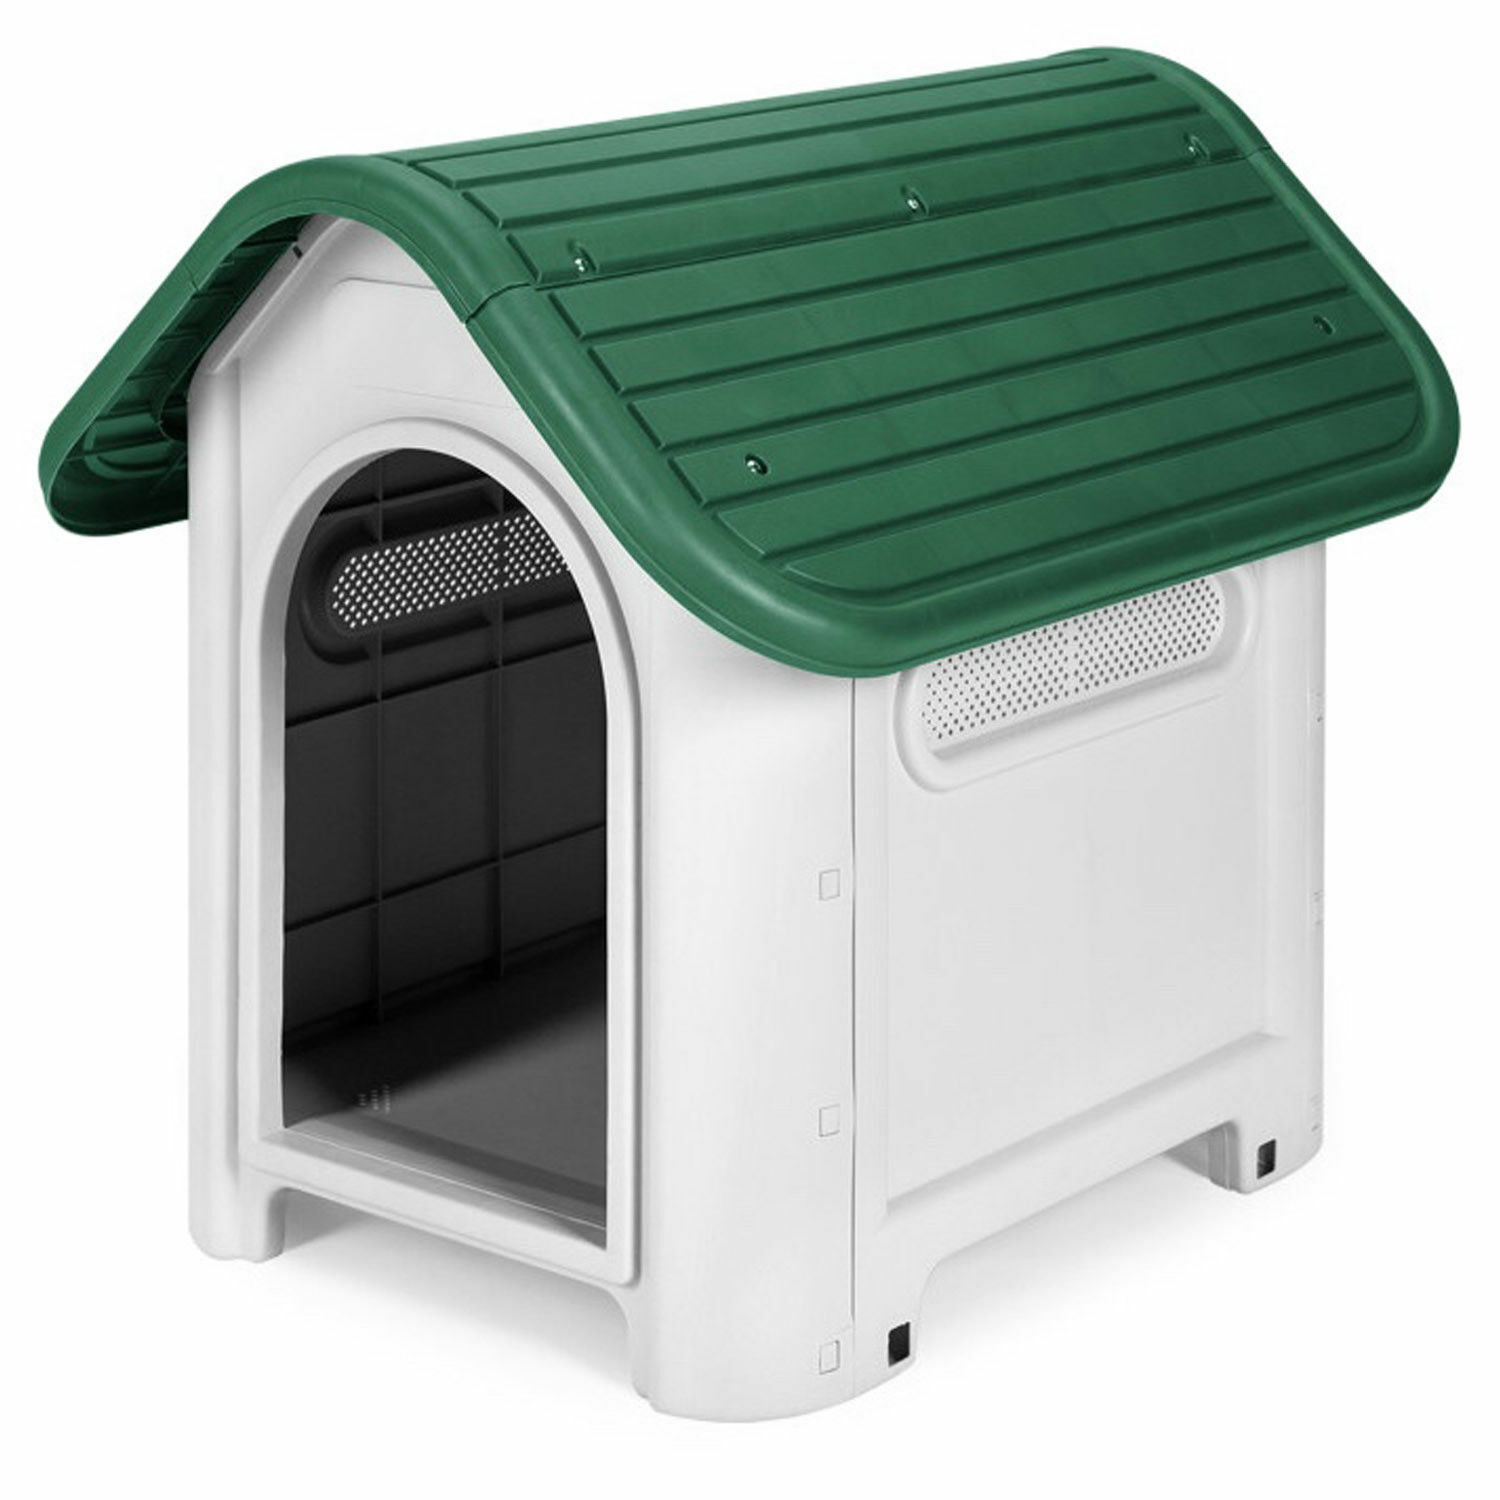 NEW PLASTIC STRONG DURABLE DOG PUPPY PET DELUXE KENNEL HOUSE INDOOR OUTDOOR